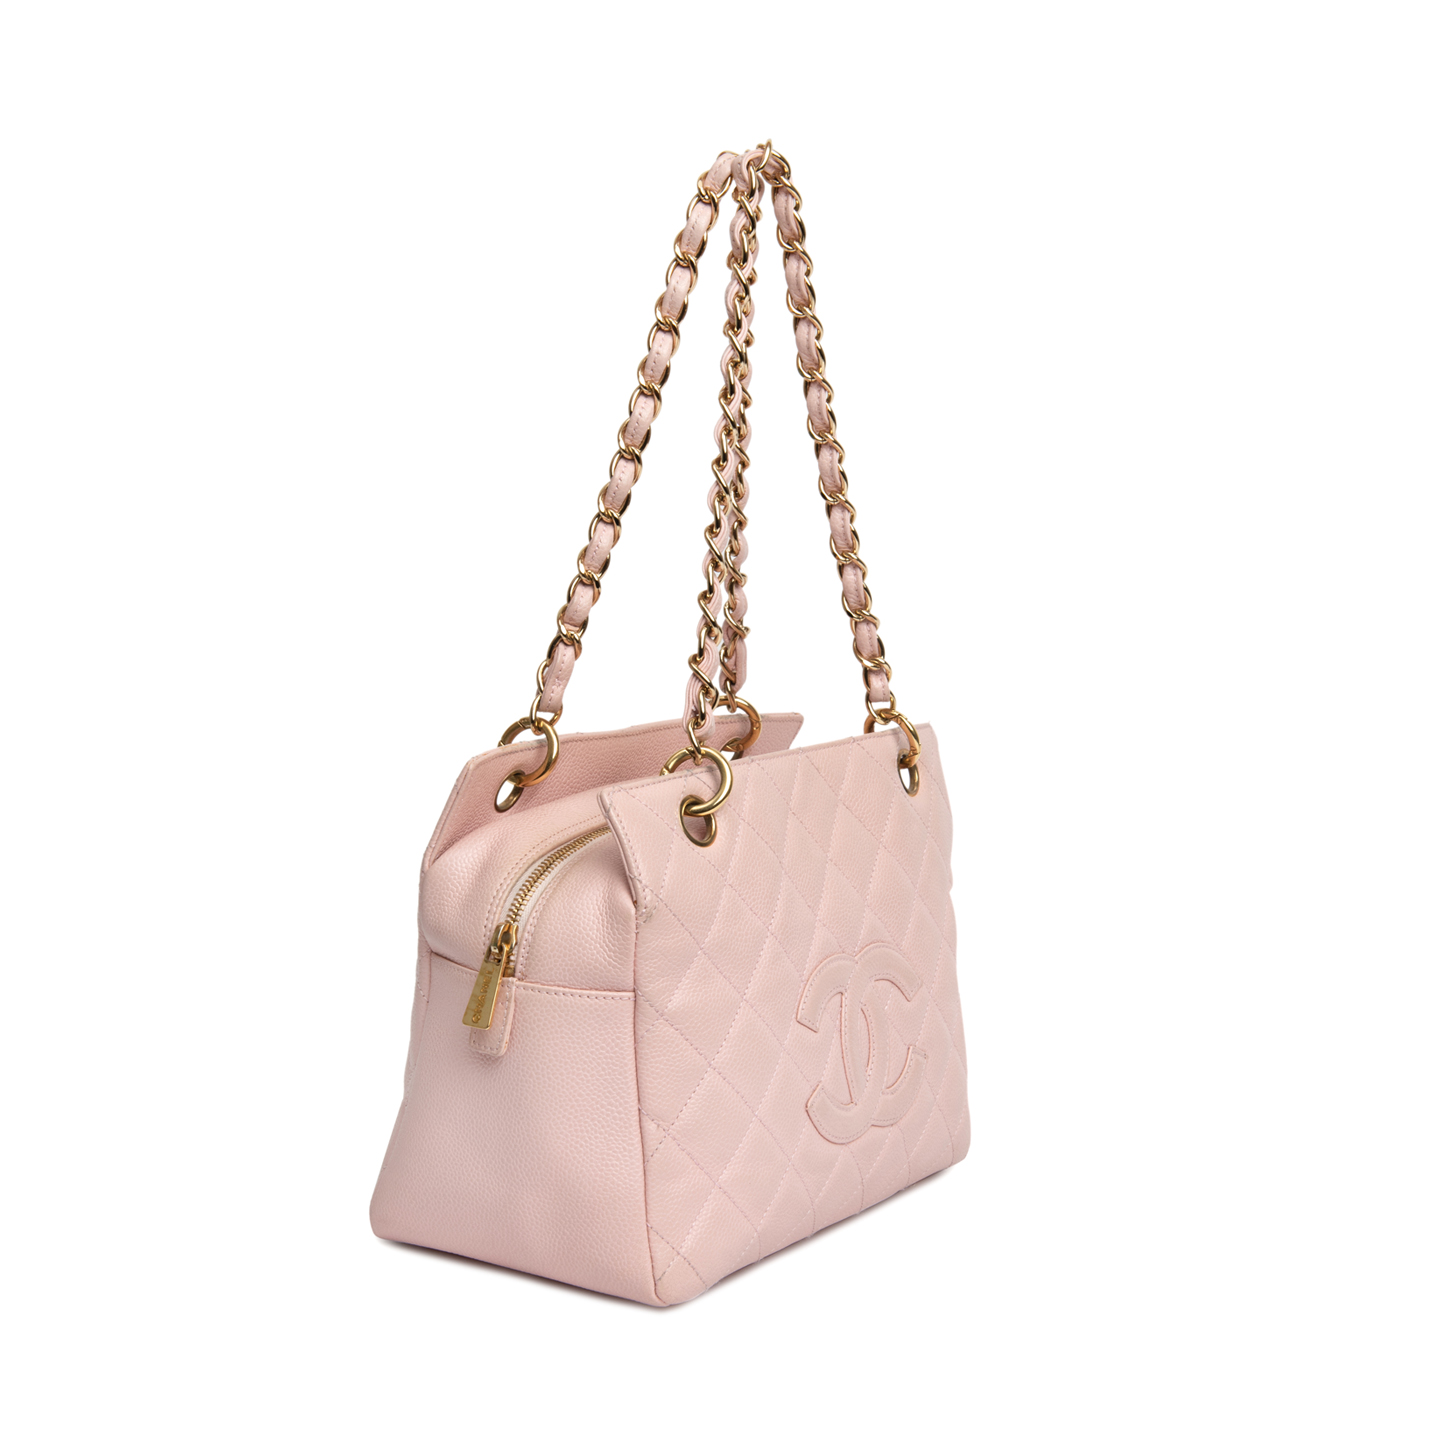 10816f9b0728 ... Chanel Pink Quilted Caviar Leather Petite Timeless Shopping Tote Bag 03  ...